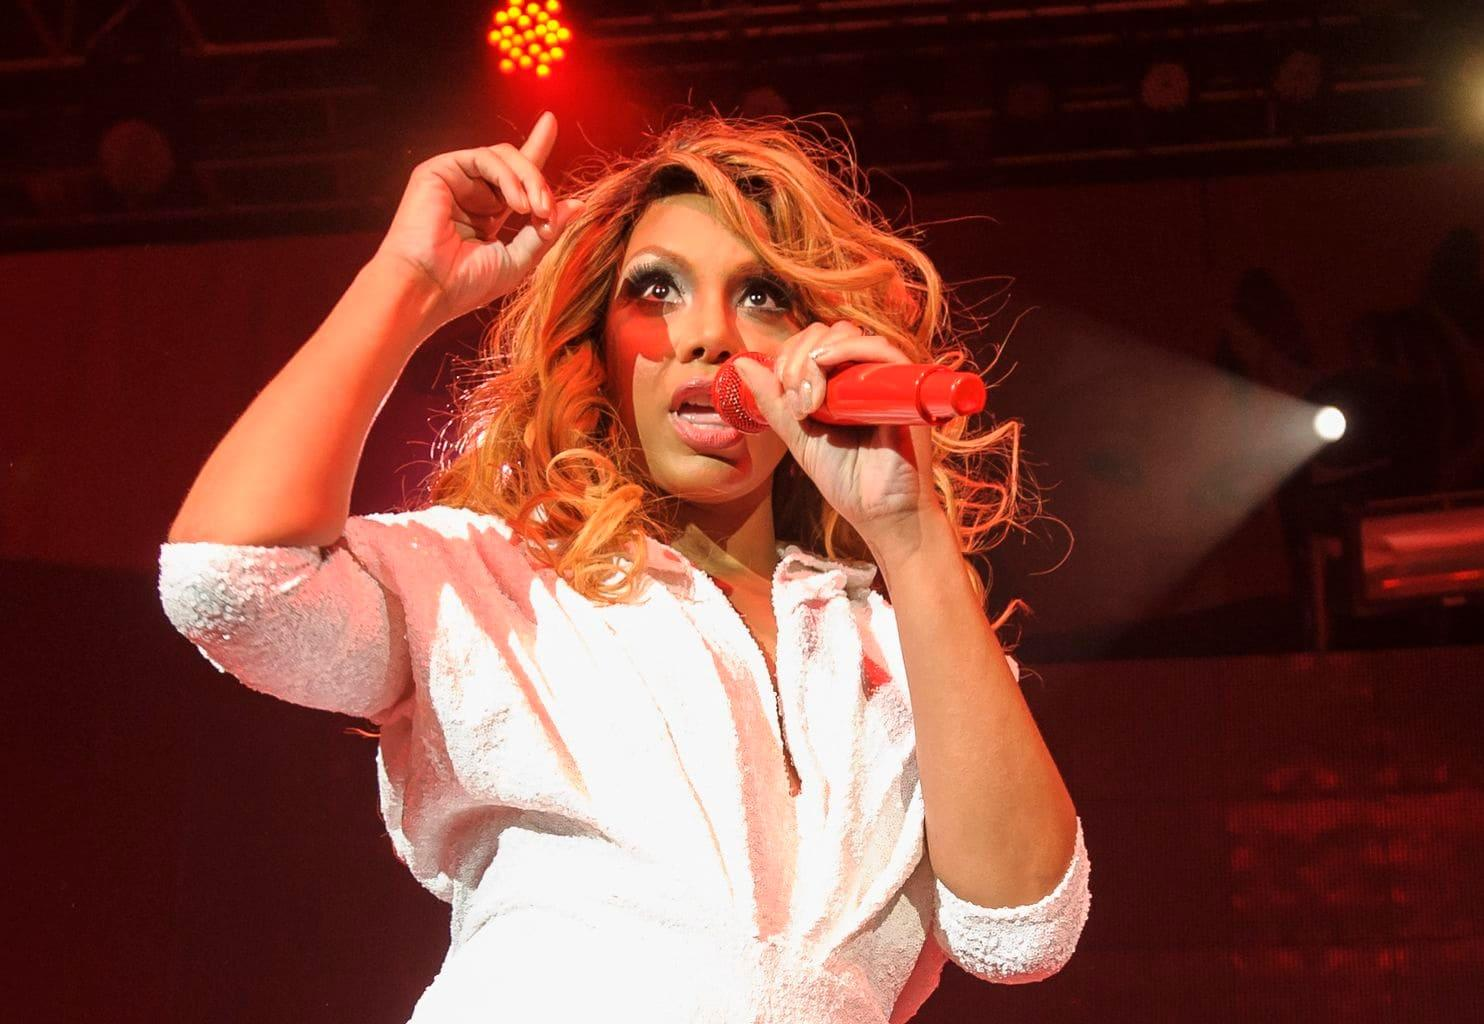 Tamar Braxton Wins The 'Reality Royalty' Award - Fans Are Happy But Ask Her To Be Nicer To David Adefeso And Stop Humiliating Him